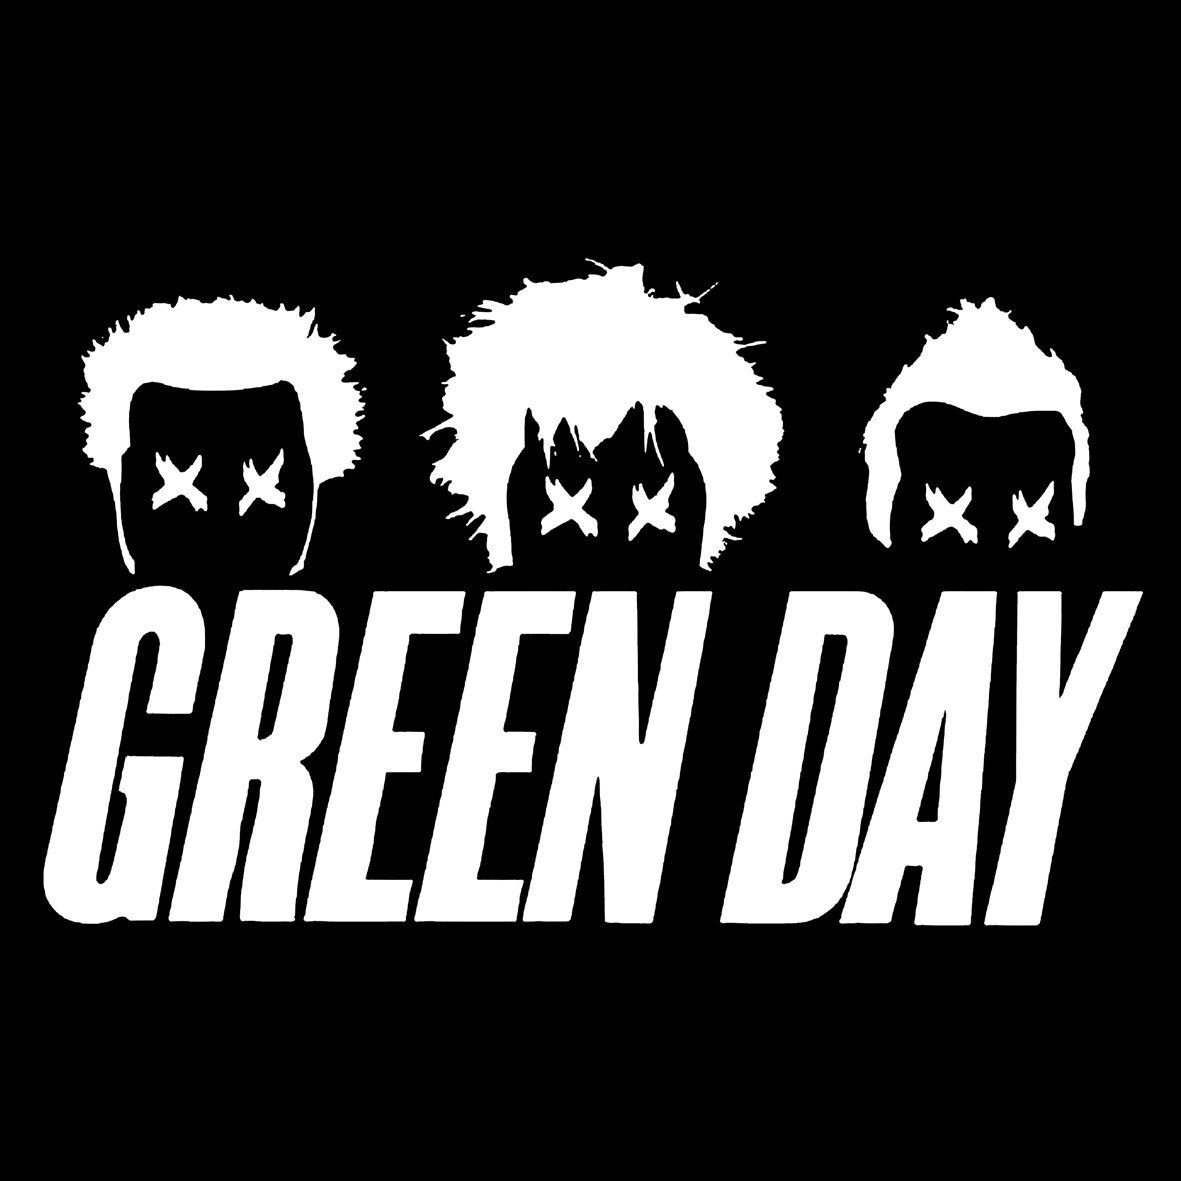 Green Day Black And White Logo Logodix Used on their second album, kerplunk (1992) and their first ep album, 1,000 hours. green day black and white logo logodix